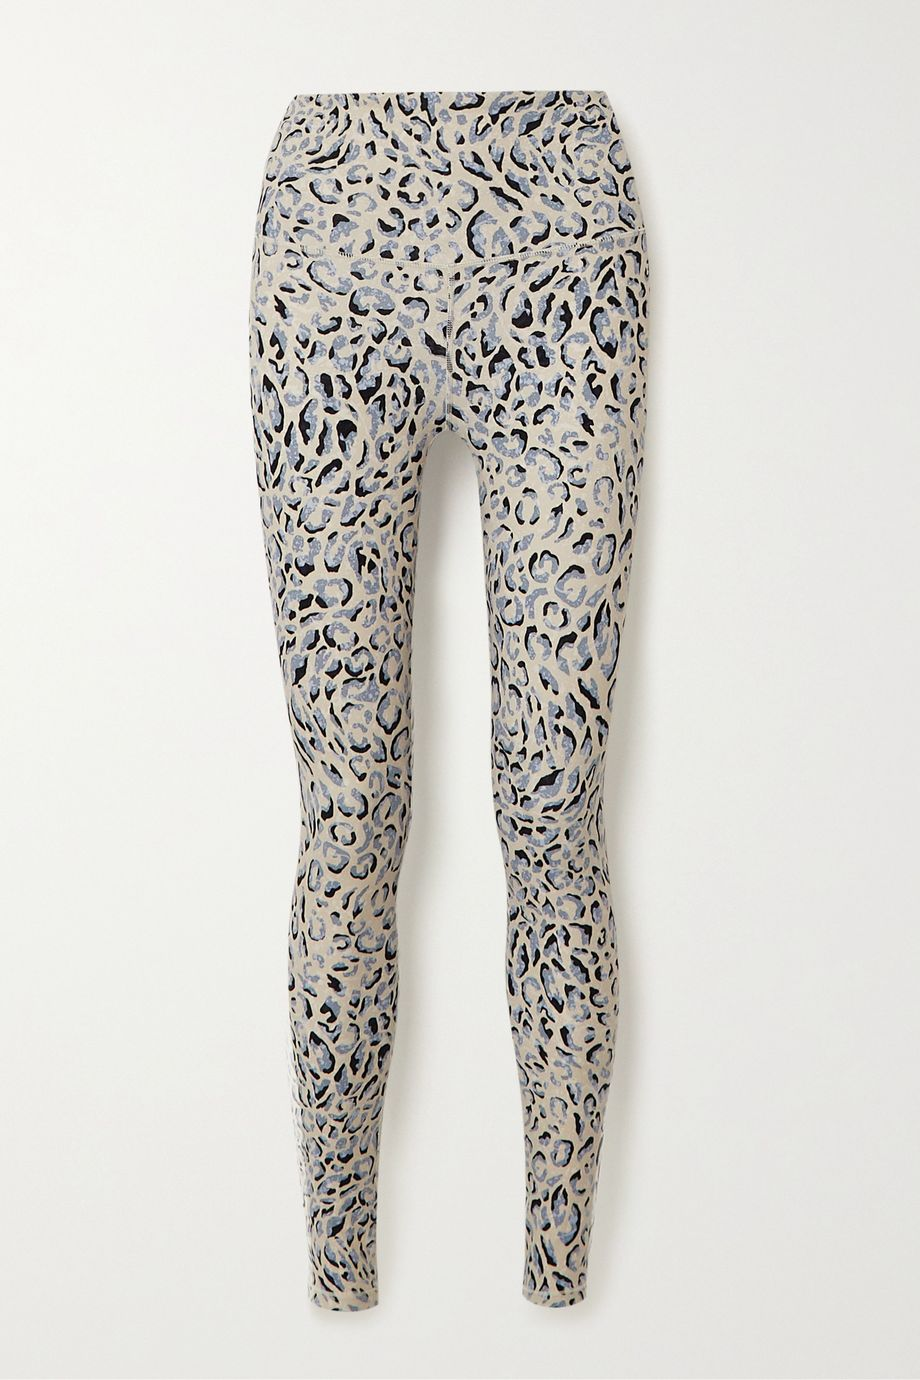 Varley Century leopard-print stretch leggings